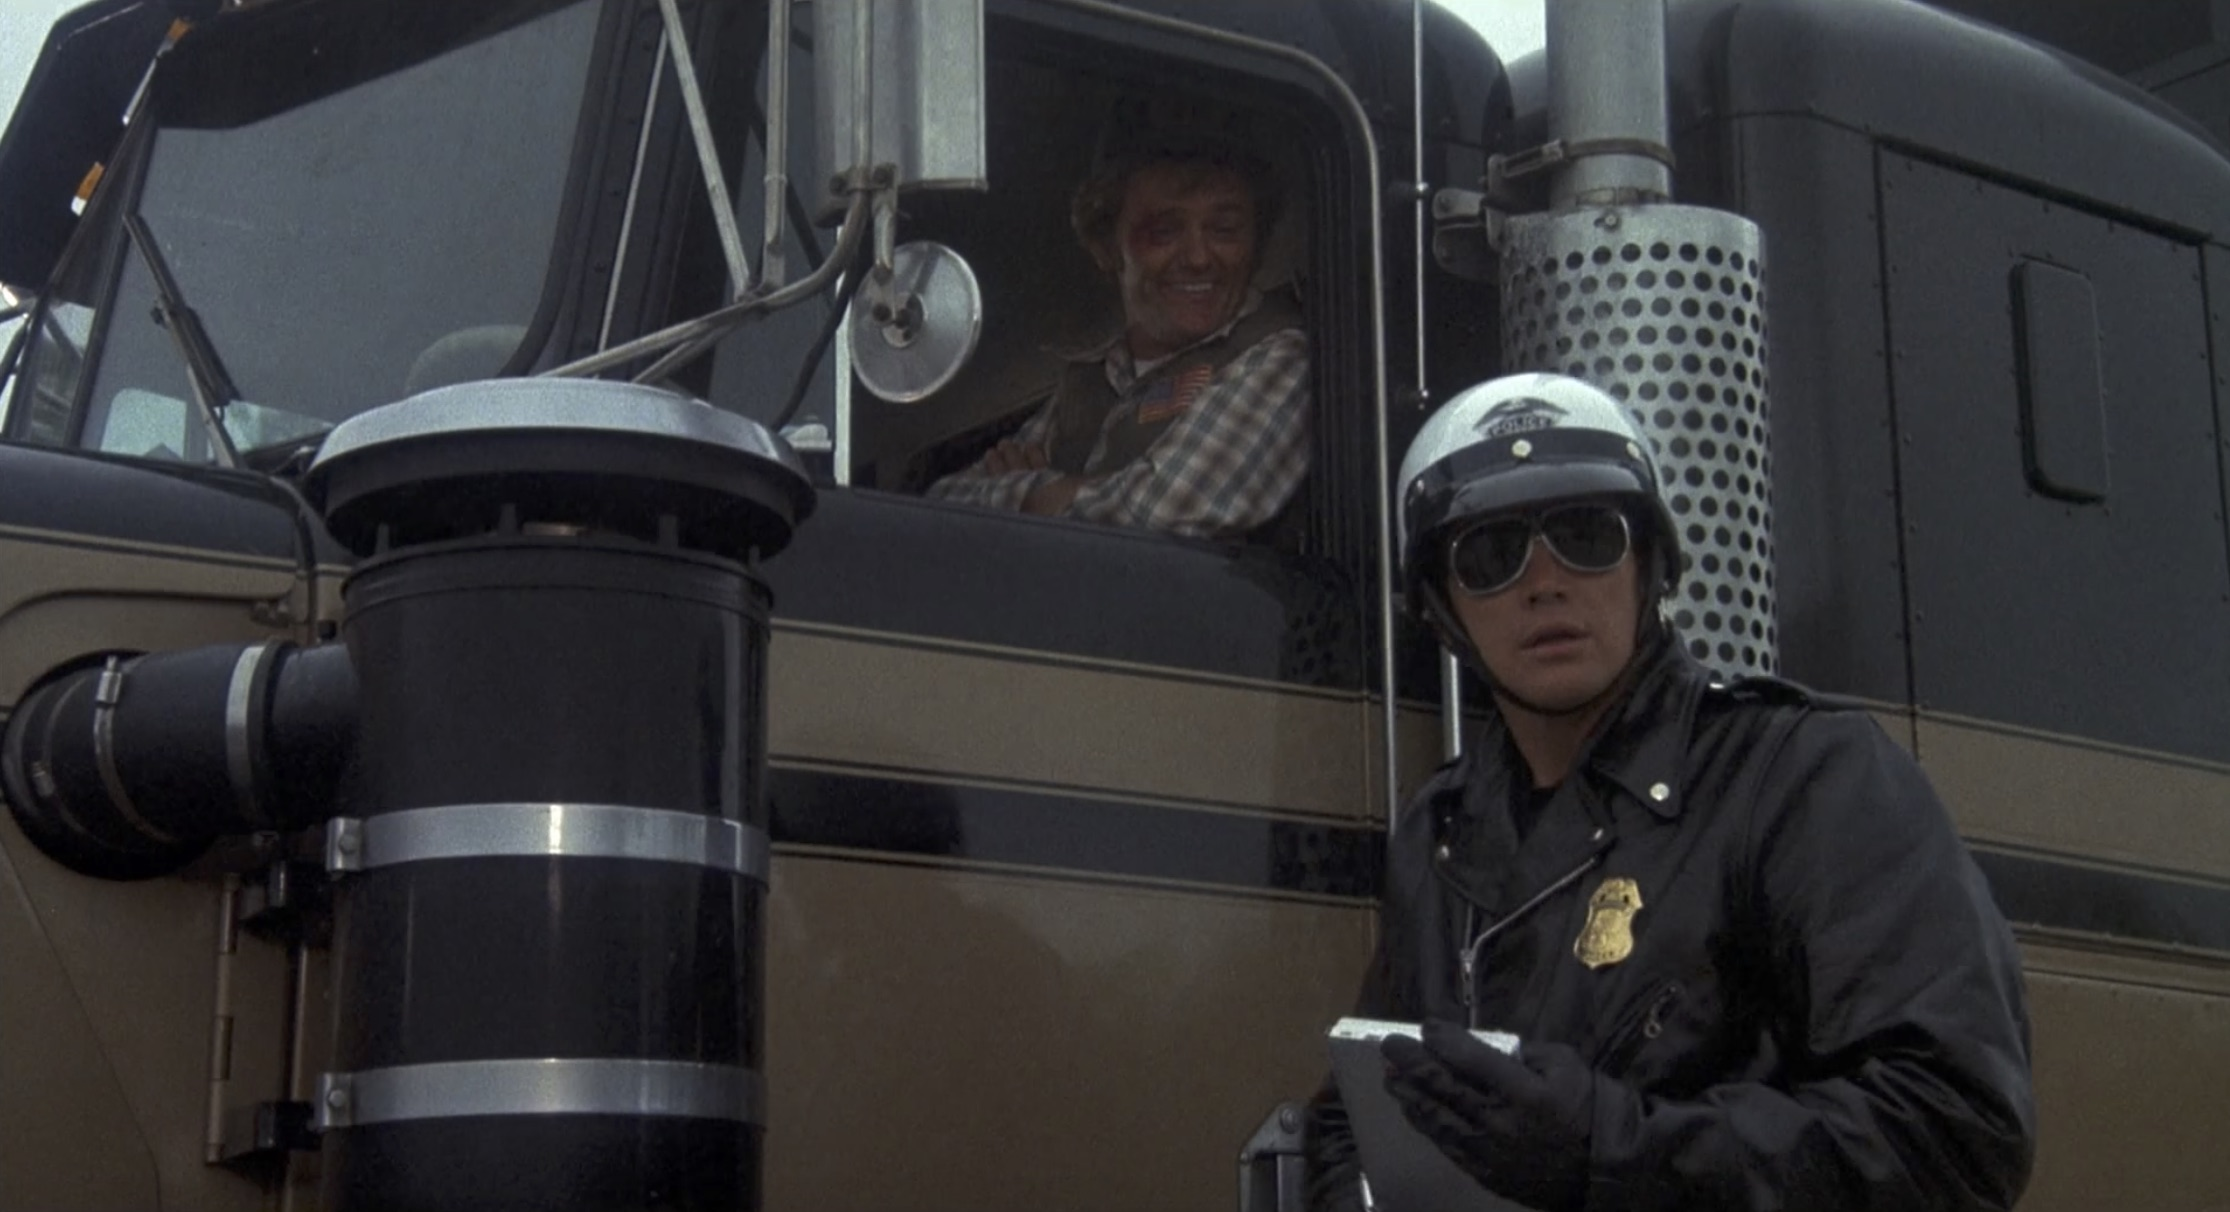 Smokey and the bandit cop and snowman